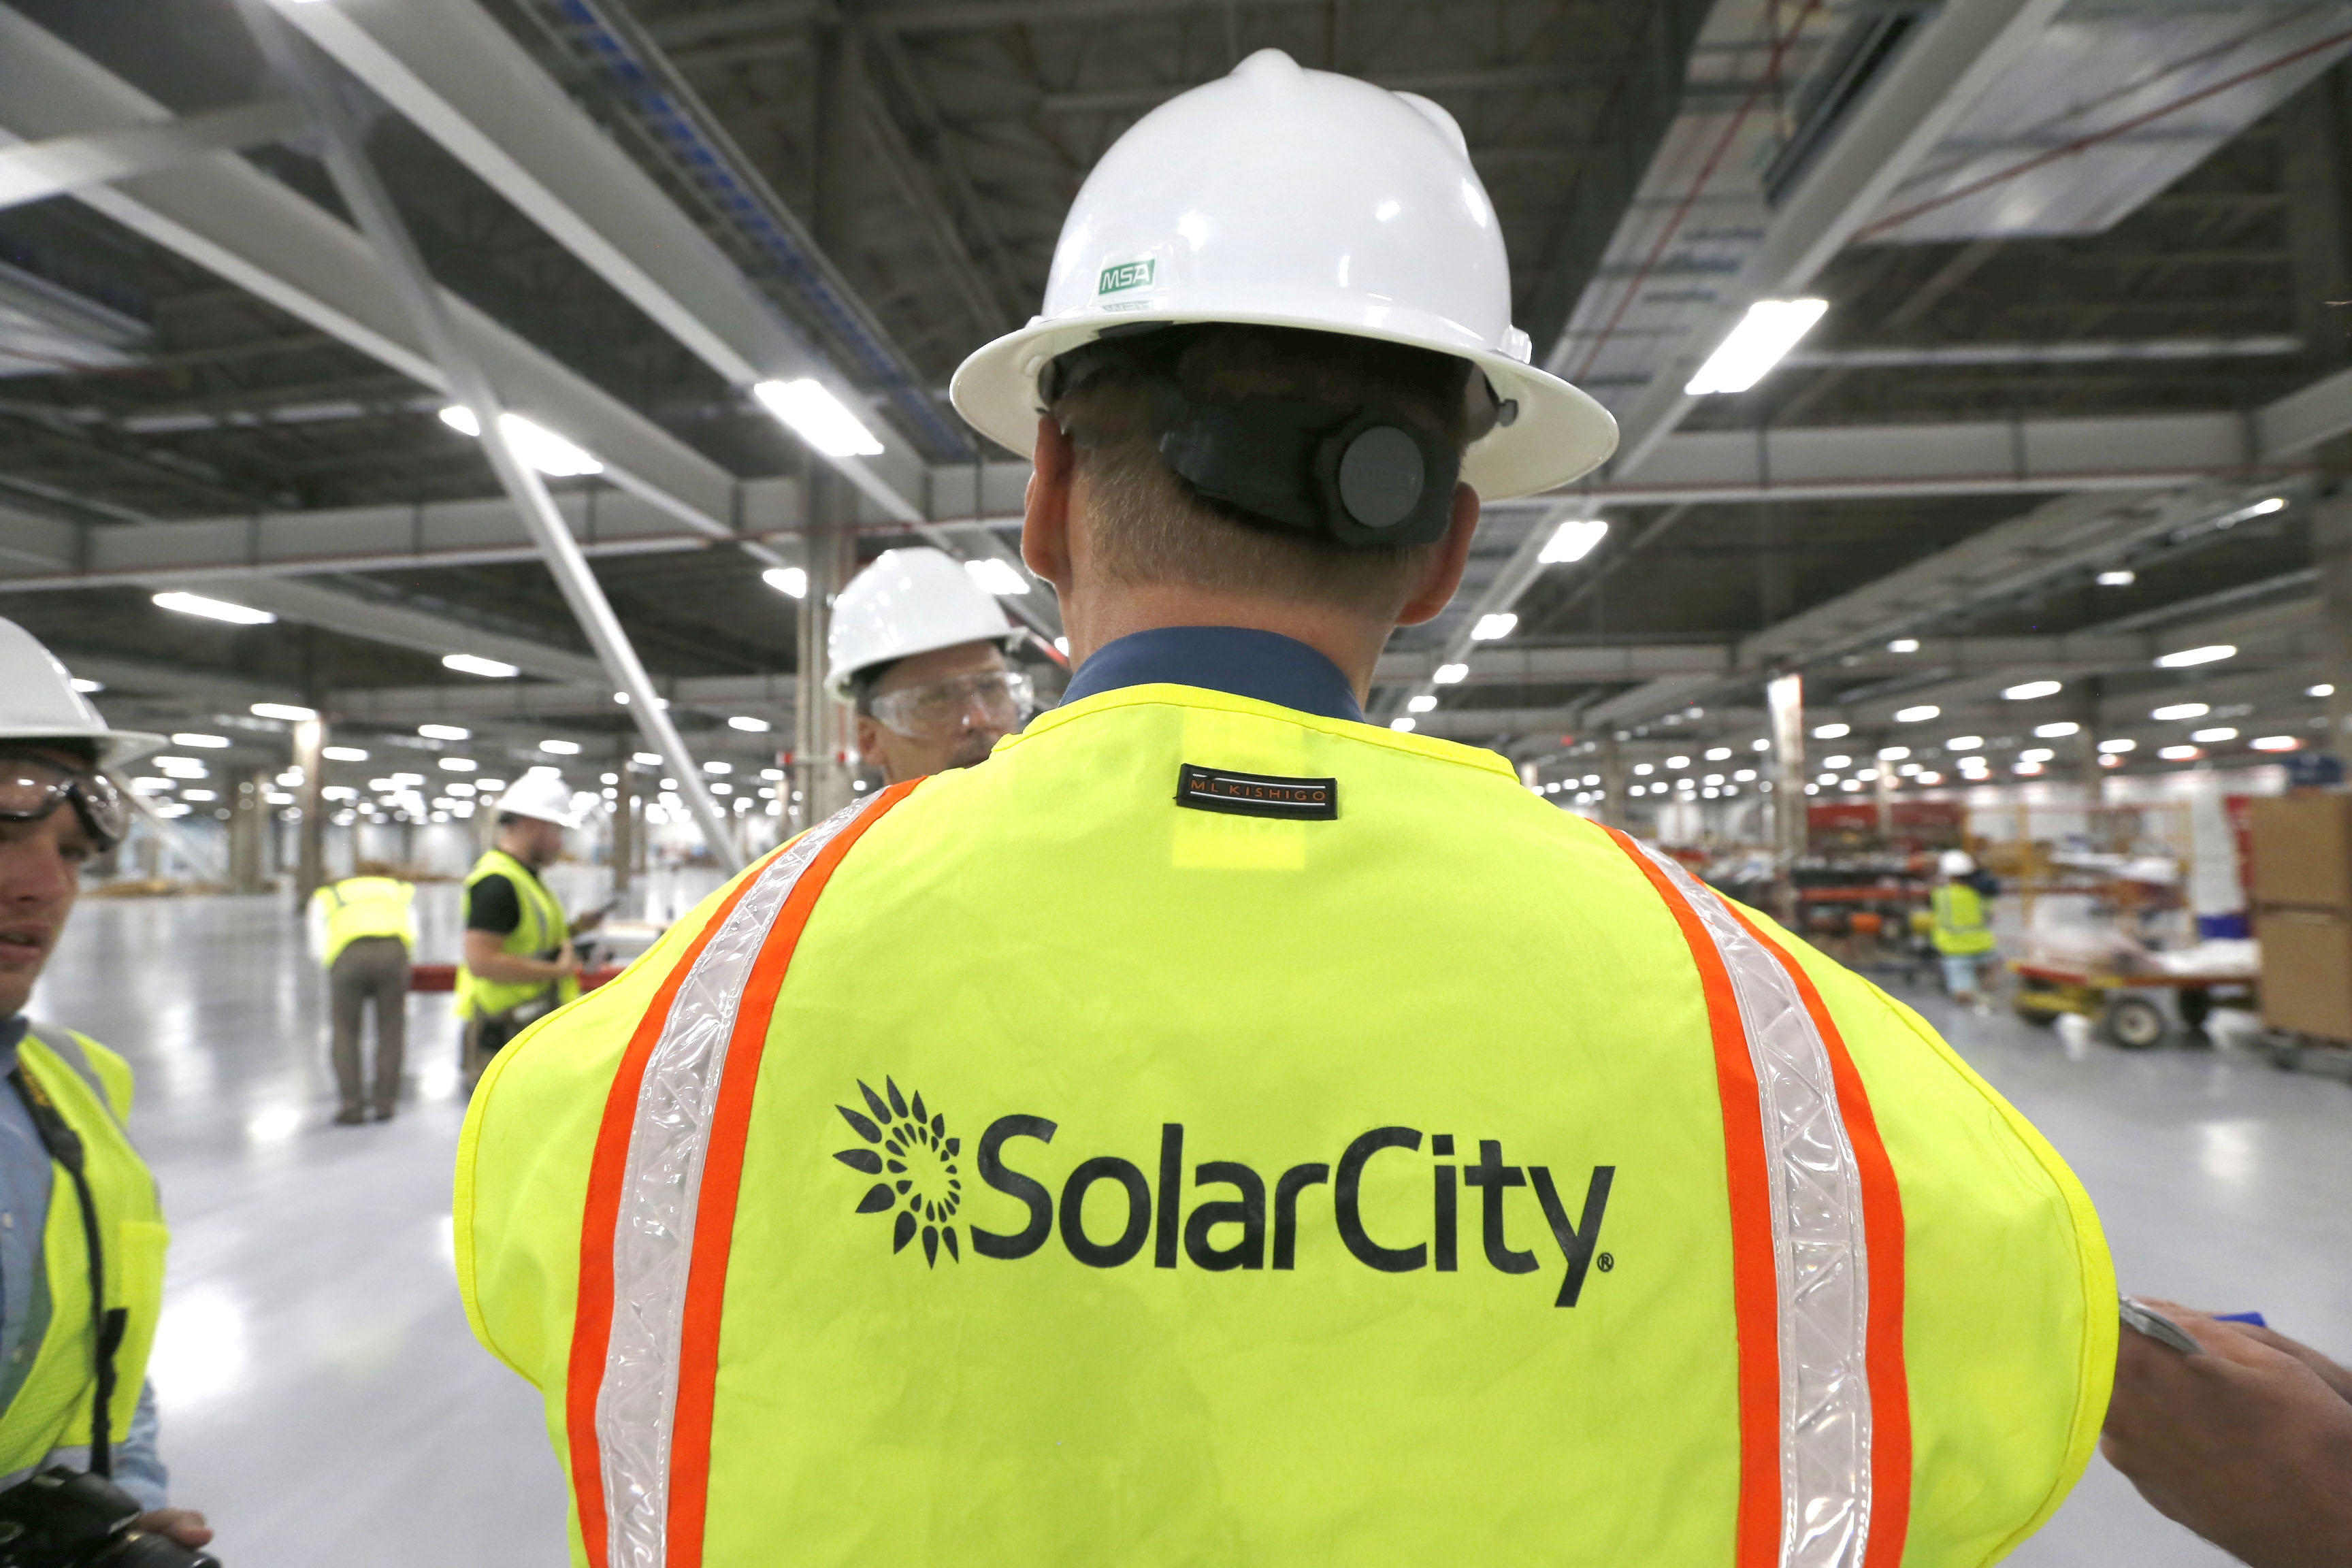 SolarCity's plant at RiverBend in South Buffalo began initial production this month. (Robert Kirkham/Buffalo News file photo)